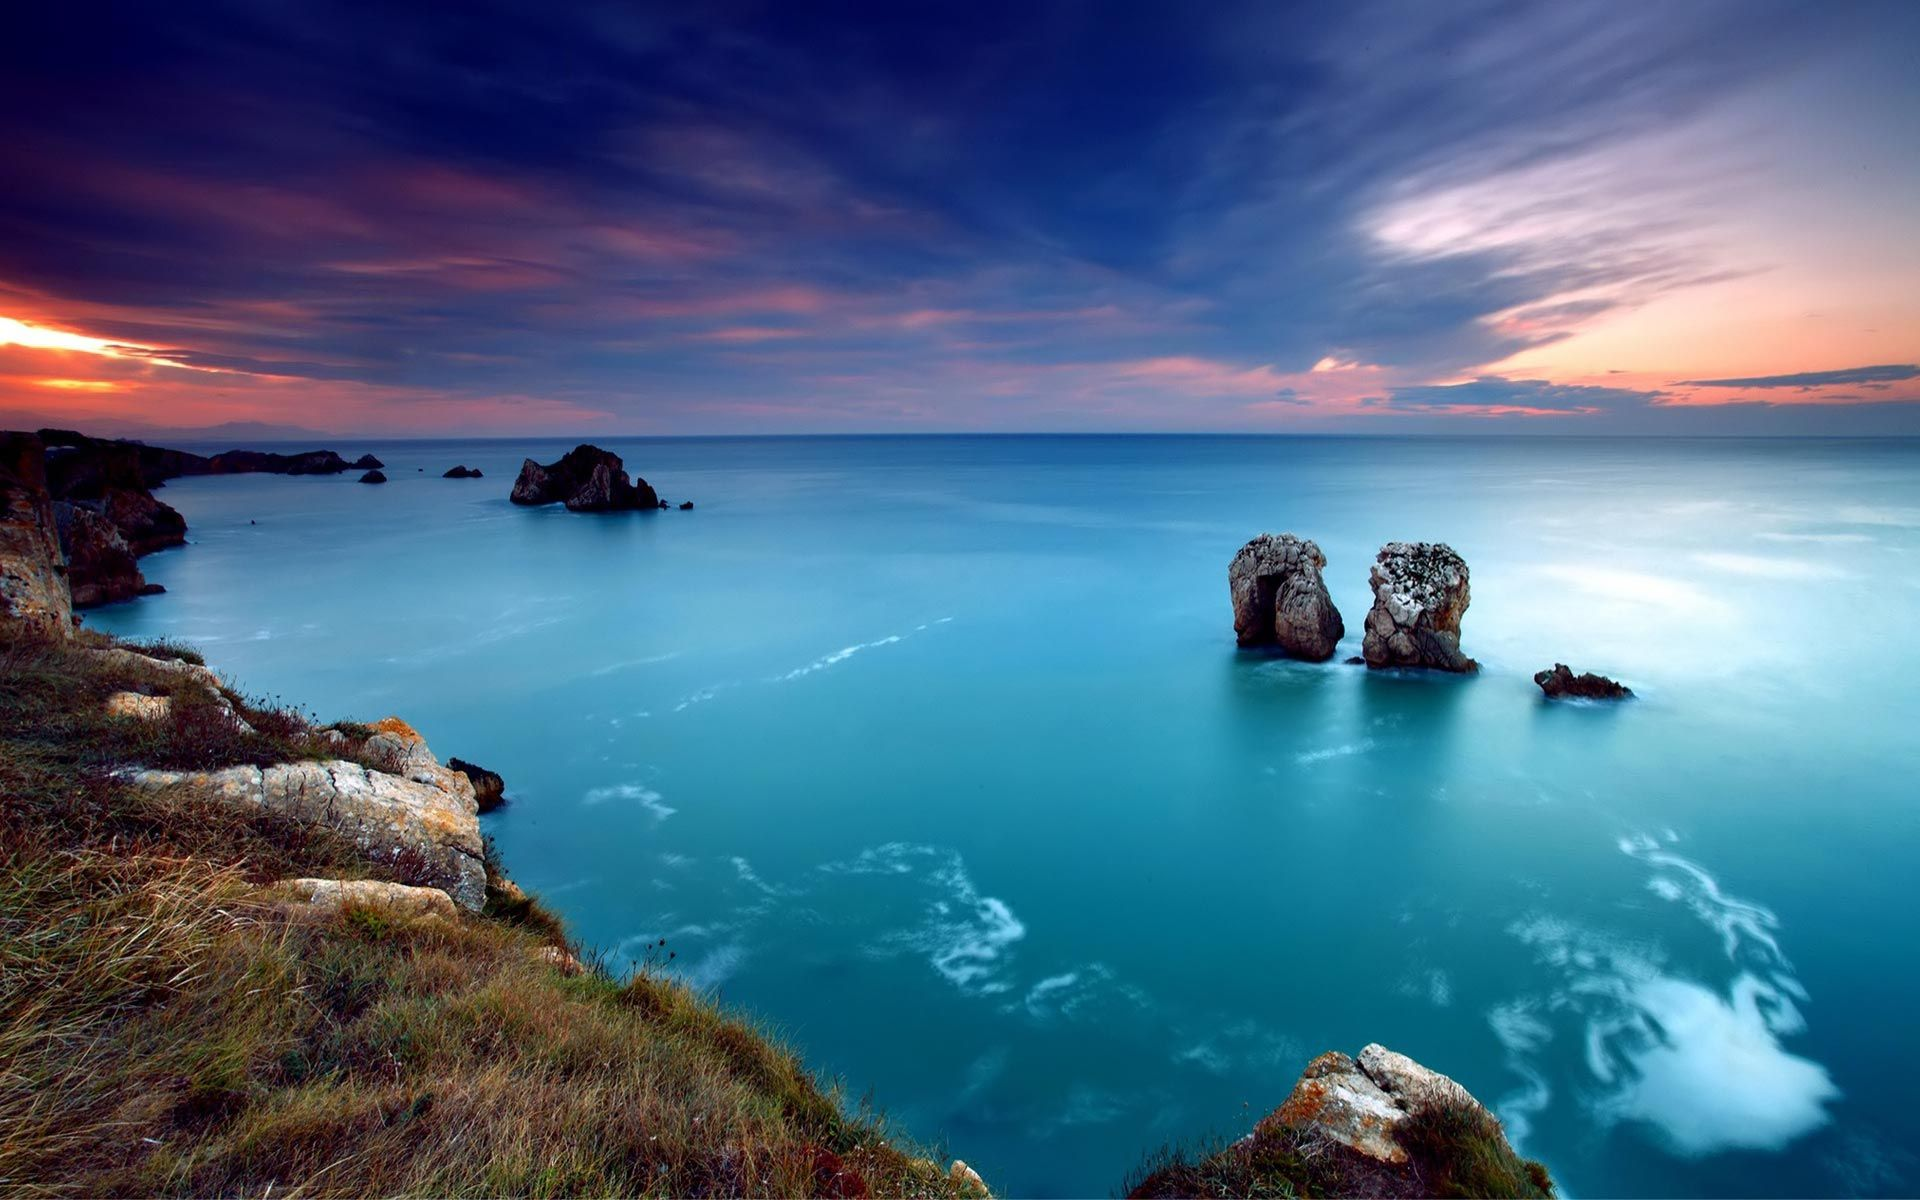 North Sea Coast In Germany Beautiful Nature Wallpaper Landscape